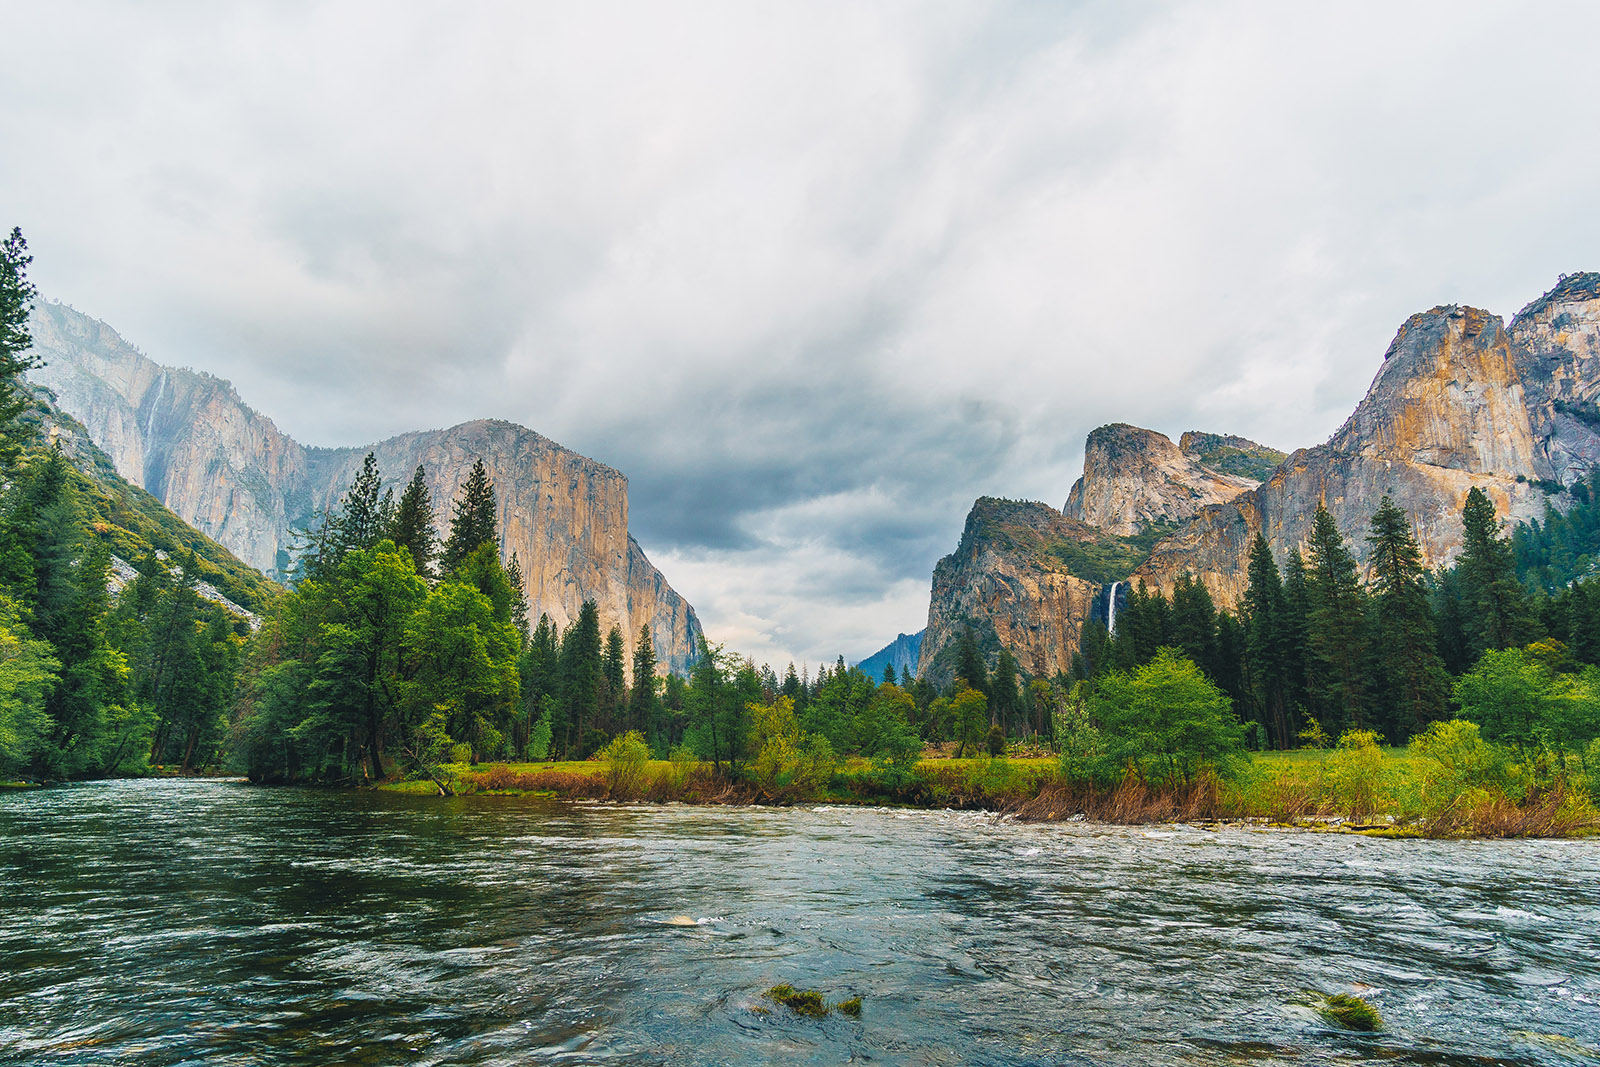 water and mountains in yosemite national park